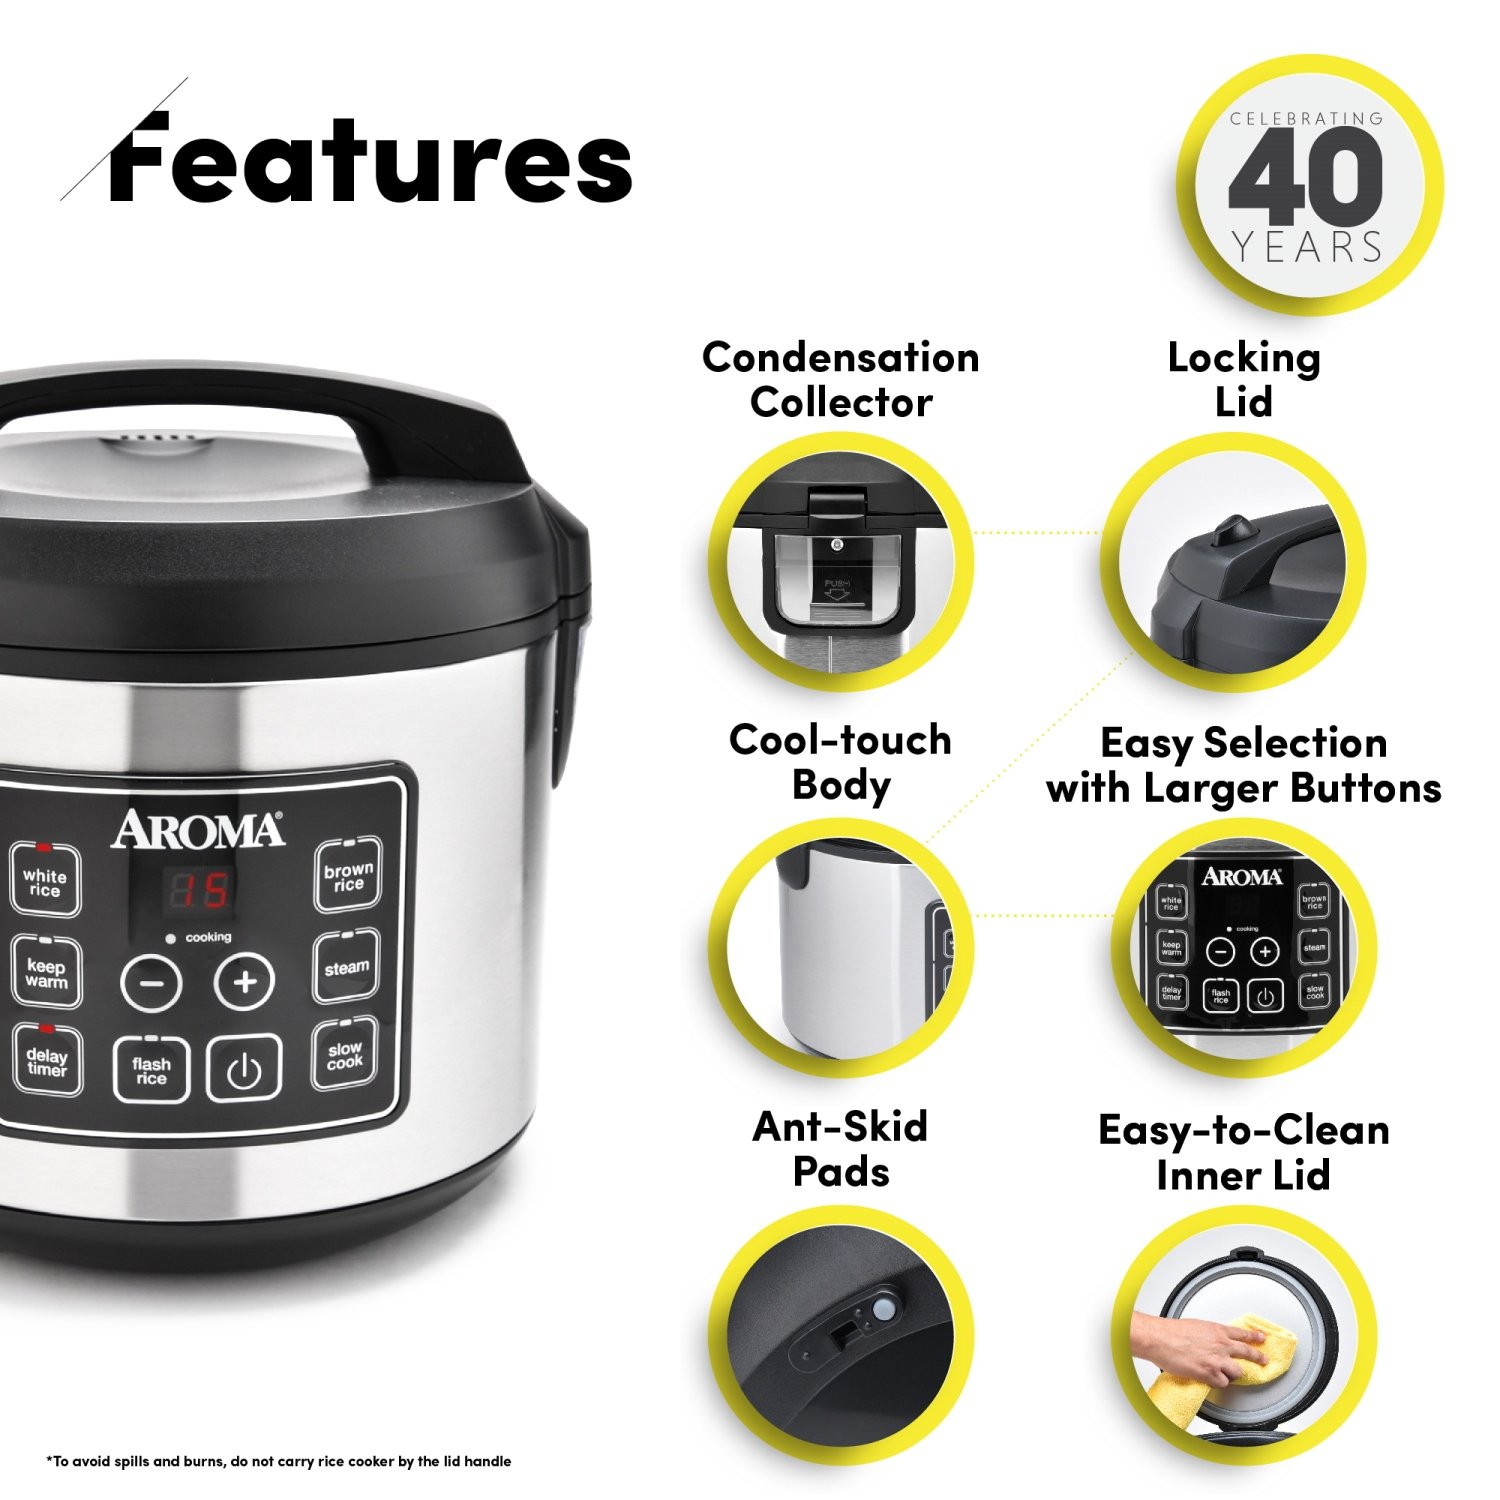 Aroma Housewares 20 Cup Cooked 10 cup uncooked Digital Rice Cooker, Slow Cooker, Food Steamer, SS Exterior ARC-150SB